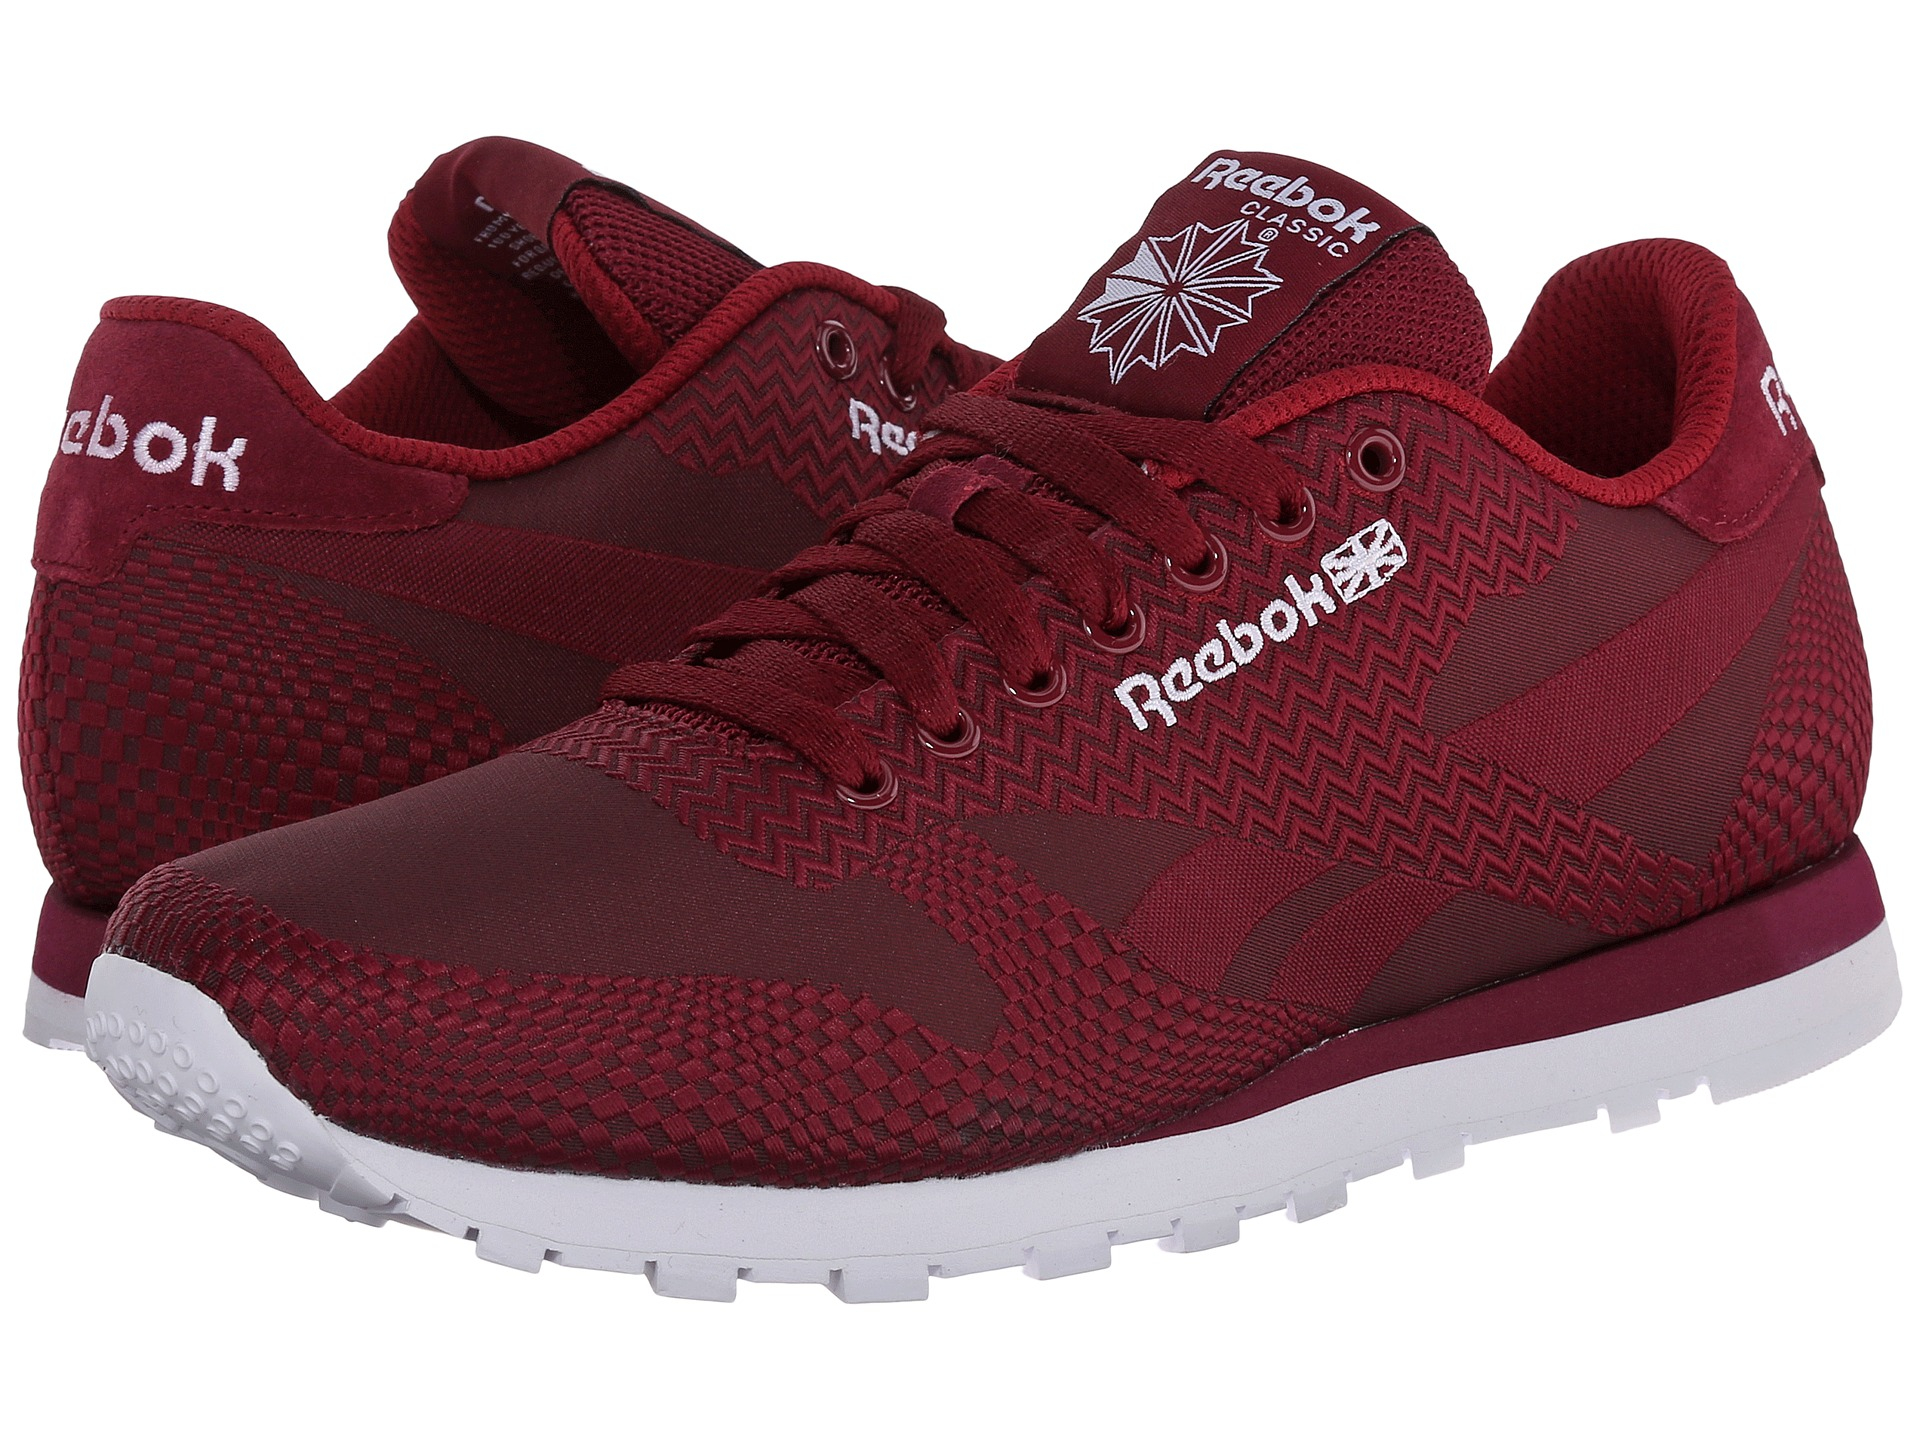 9023b1408658 Lyst - Reebok Classic Runner Jacquard in Red for Men